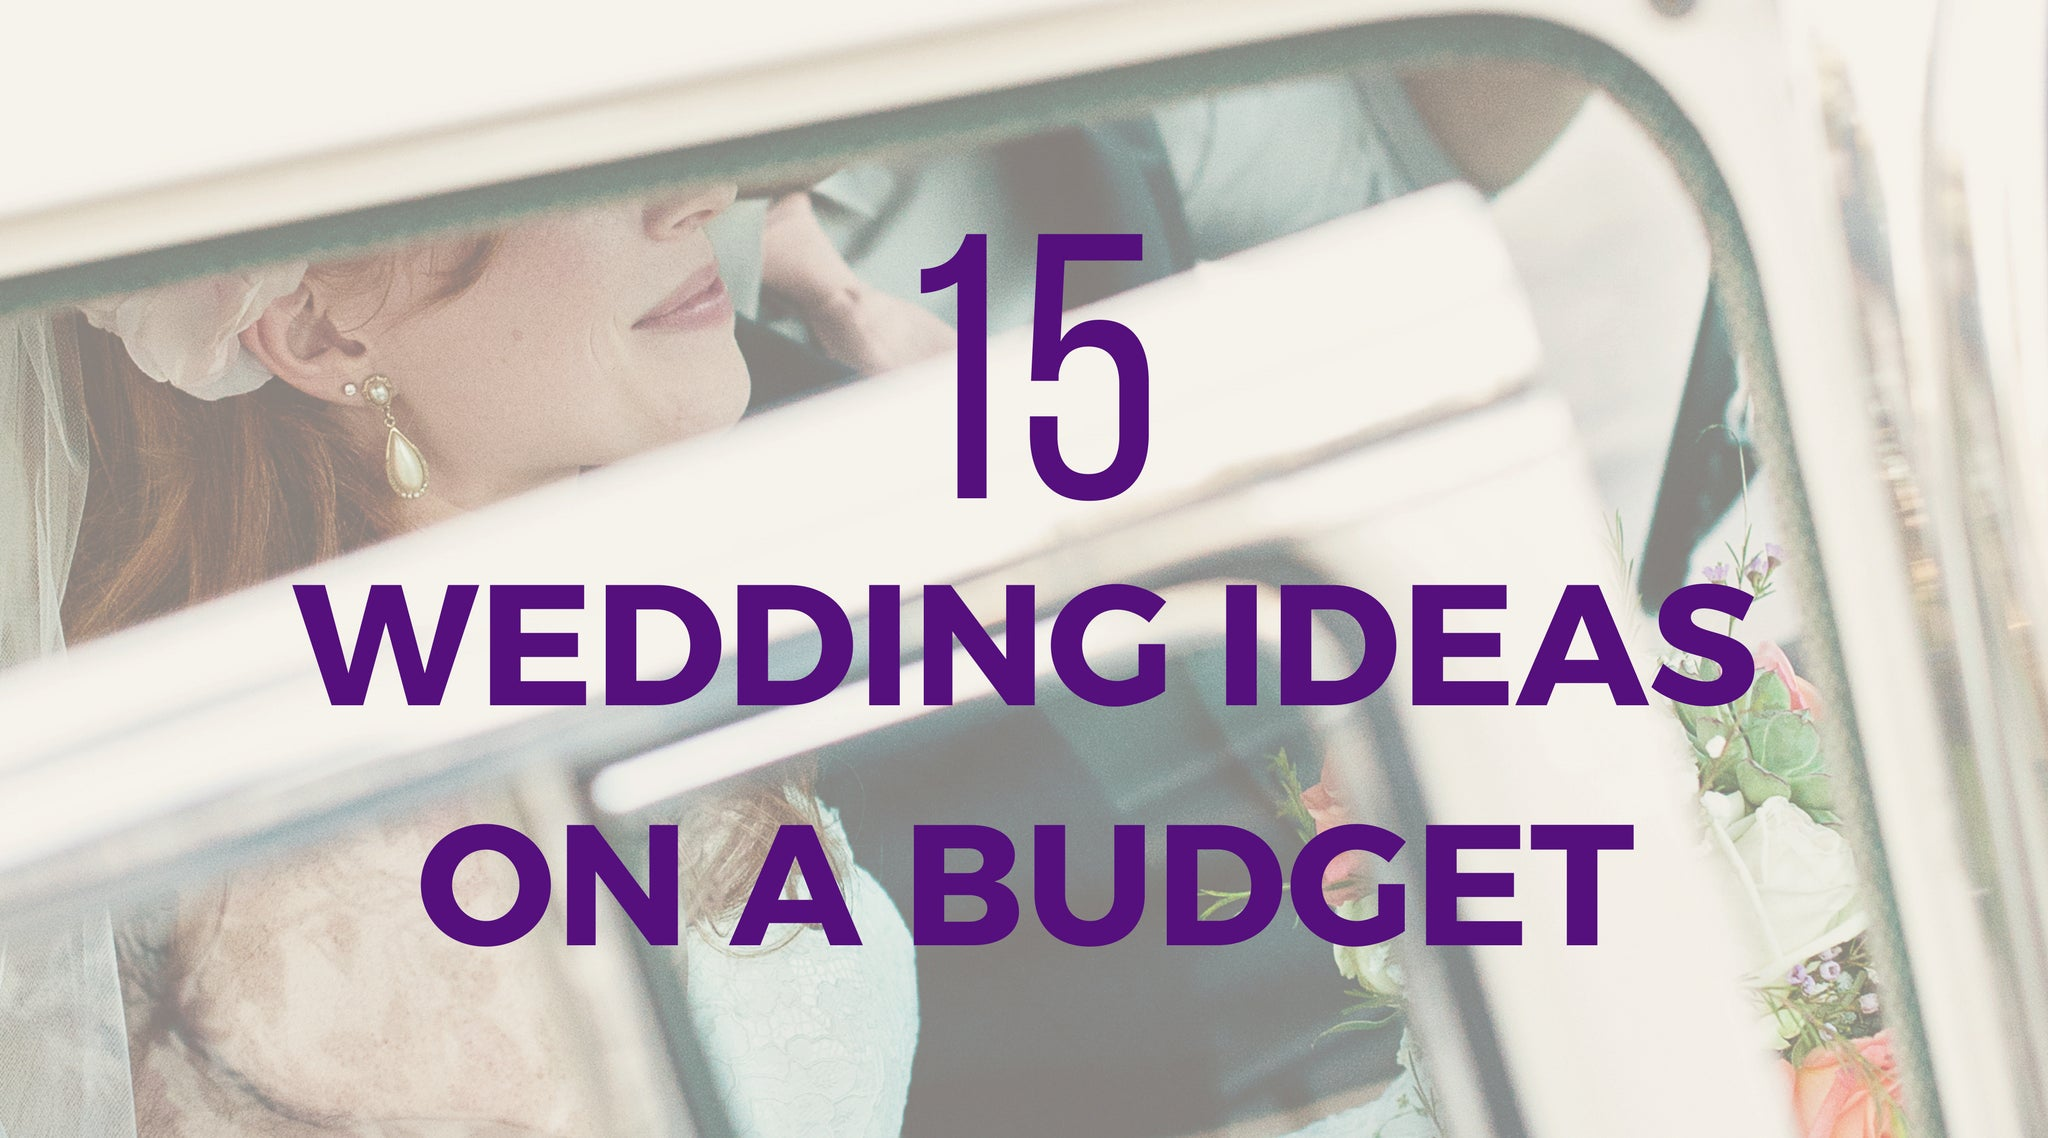 15 Simple And Elegant Diy Wedding Ideas On A Budget Ella Celebration